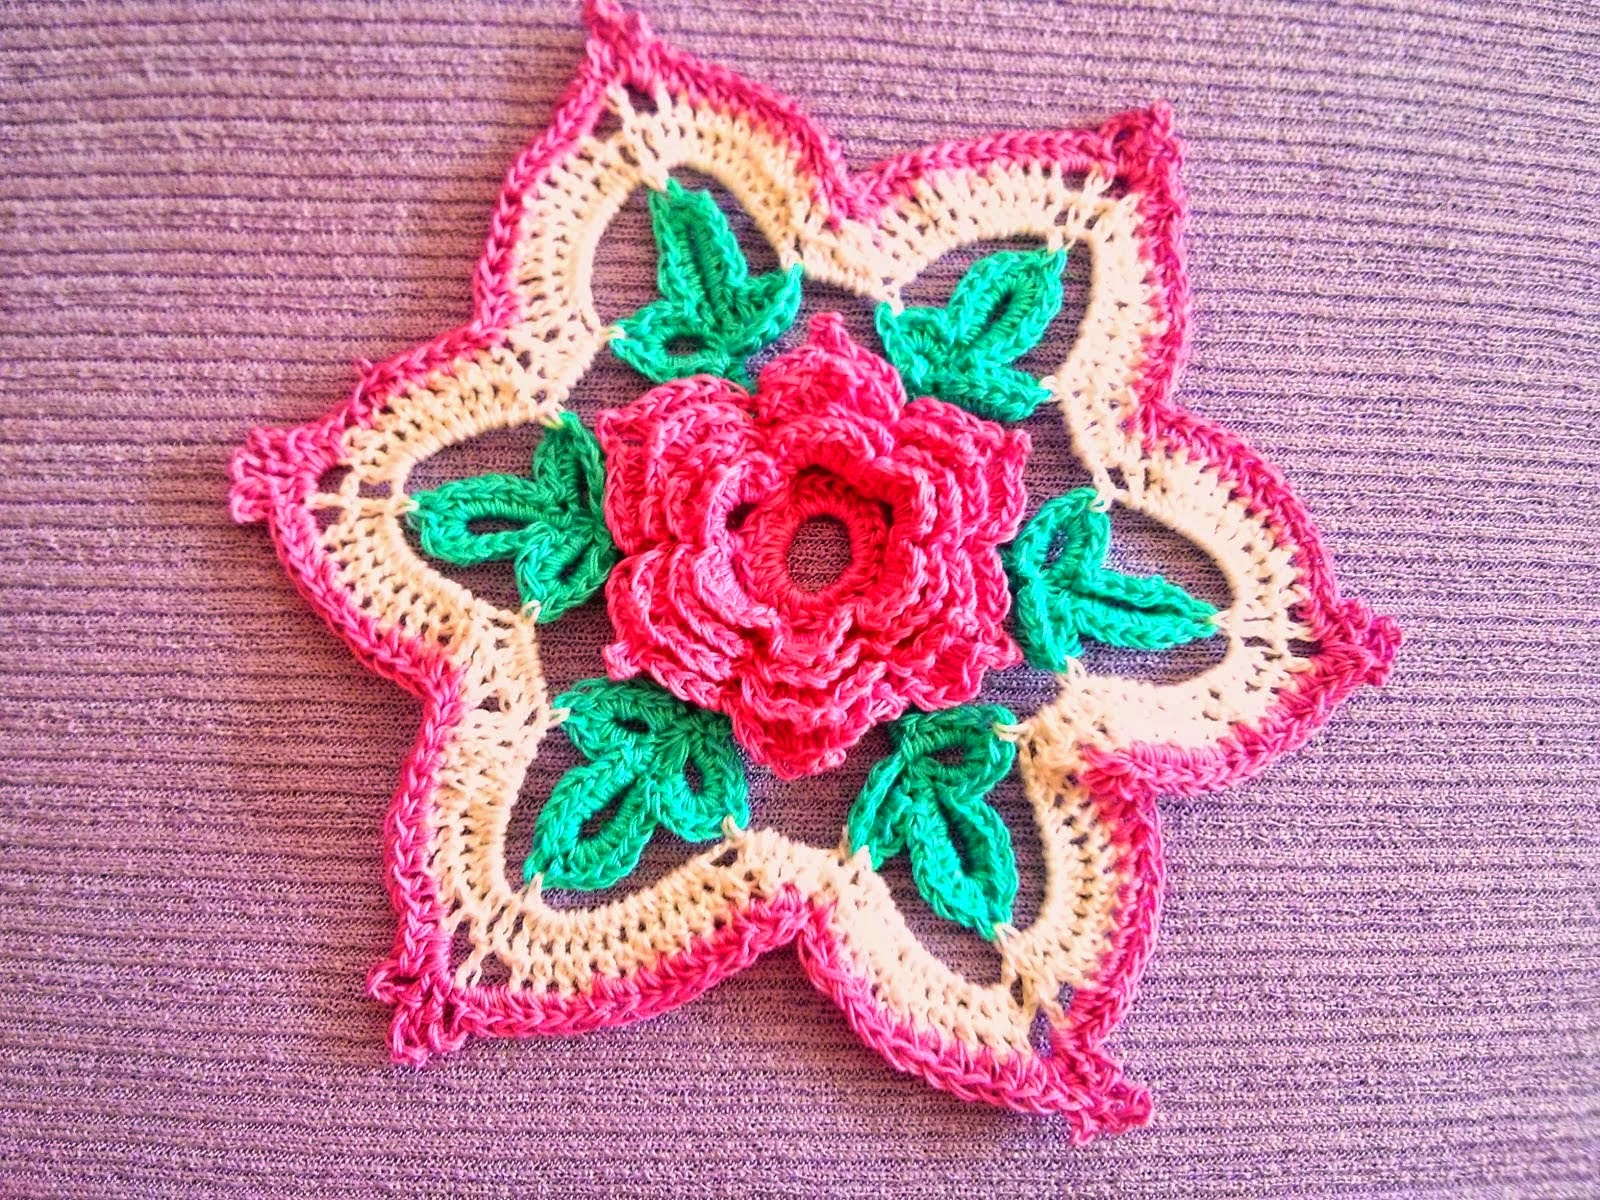 Links de crochet